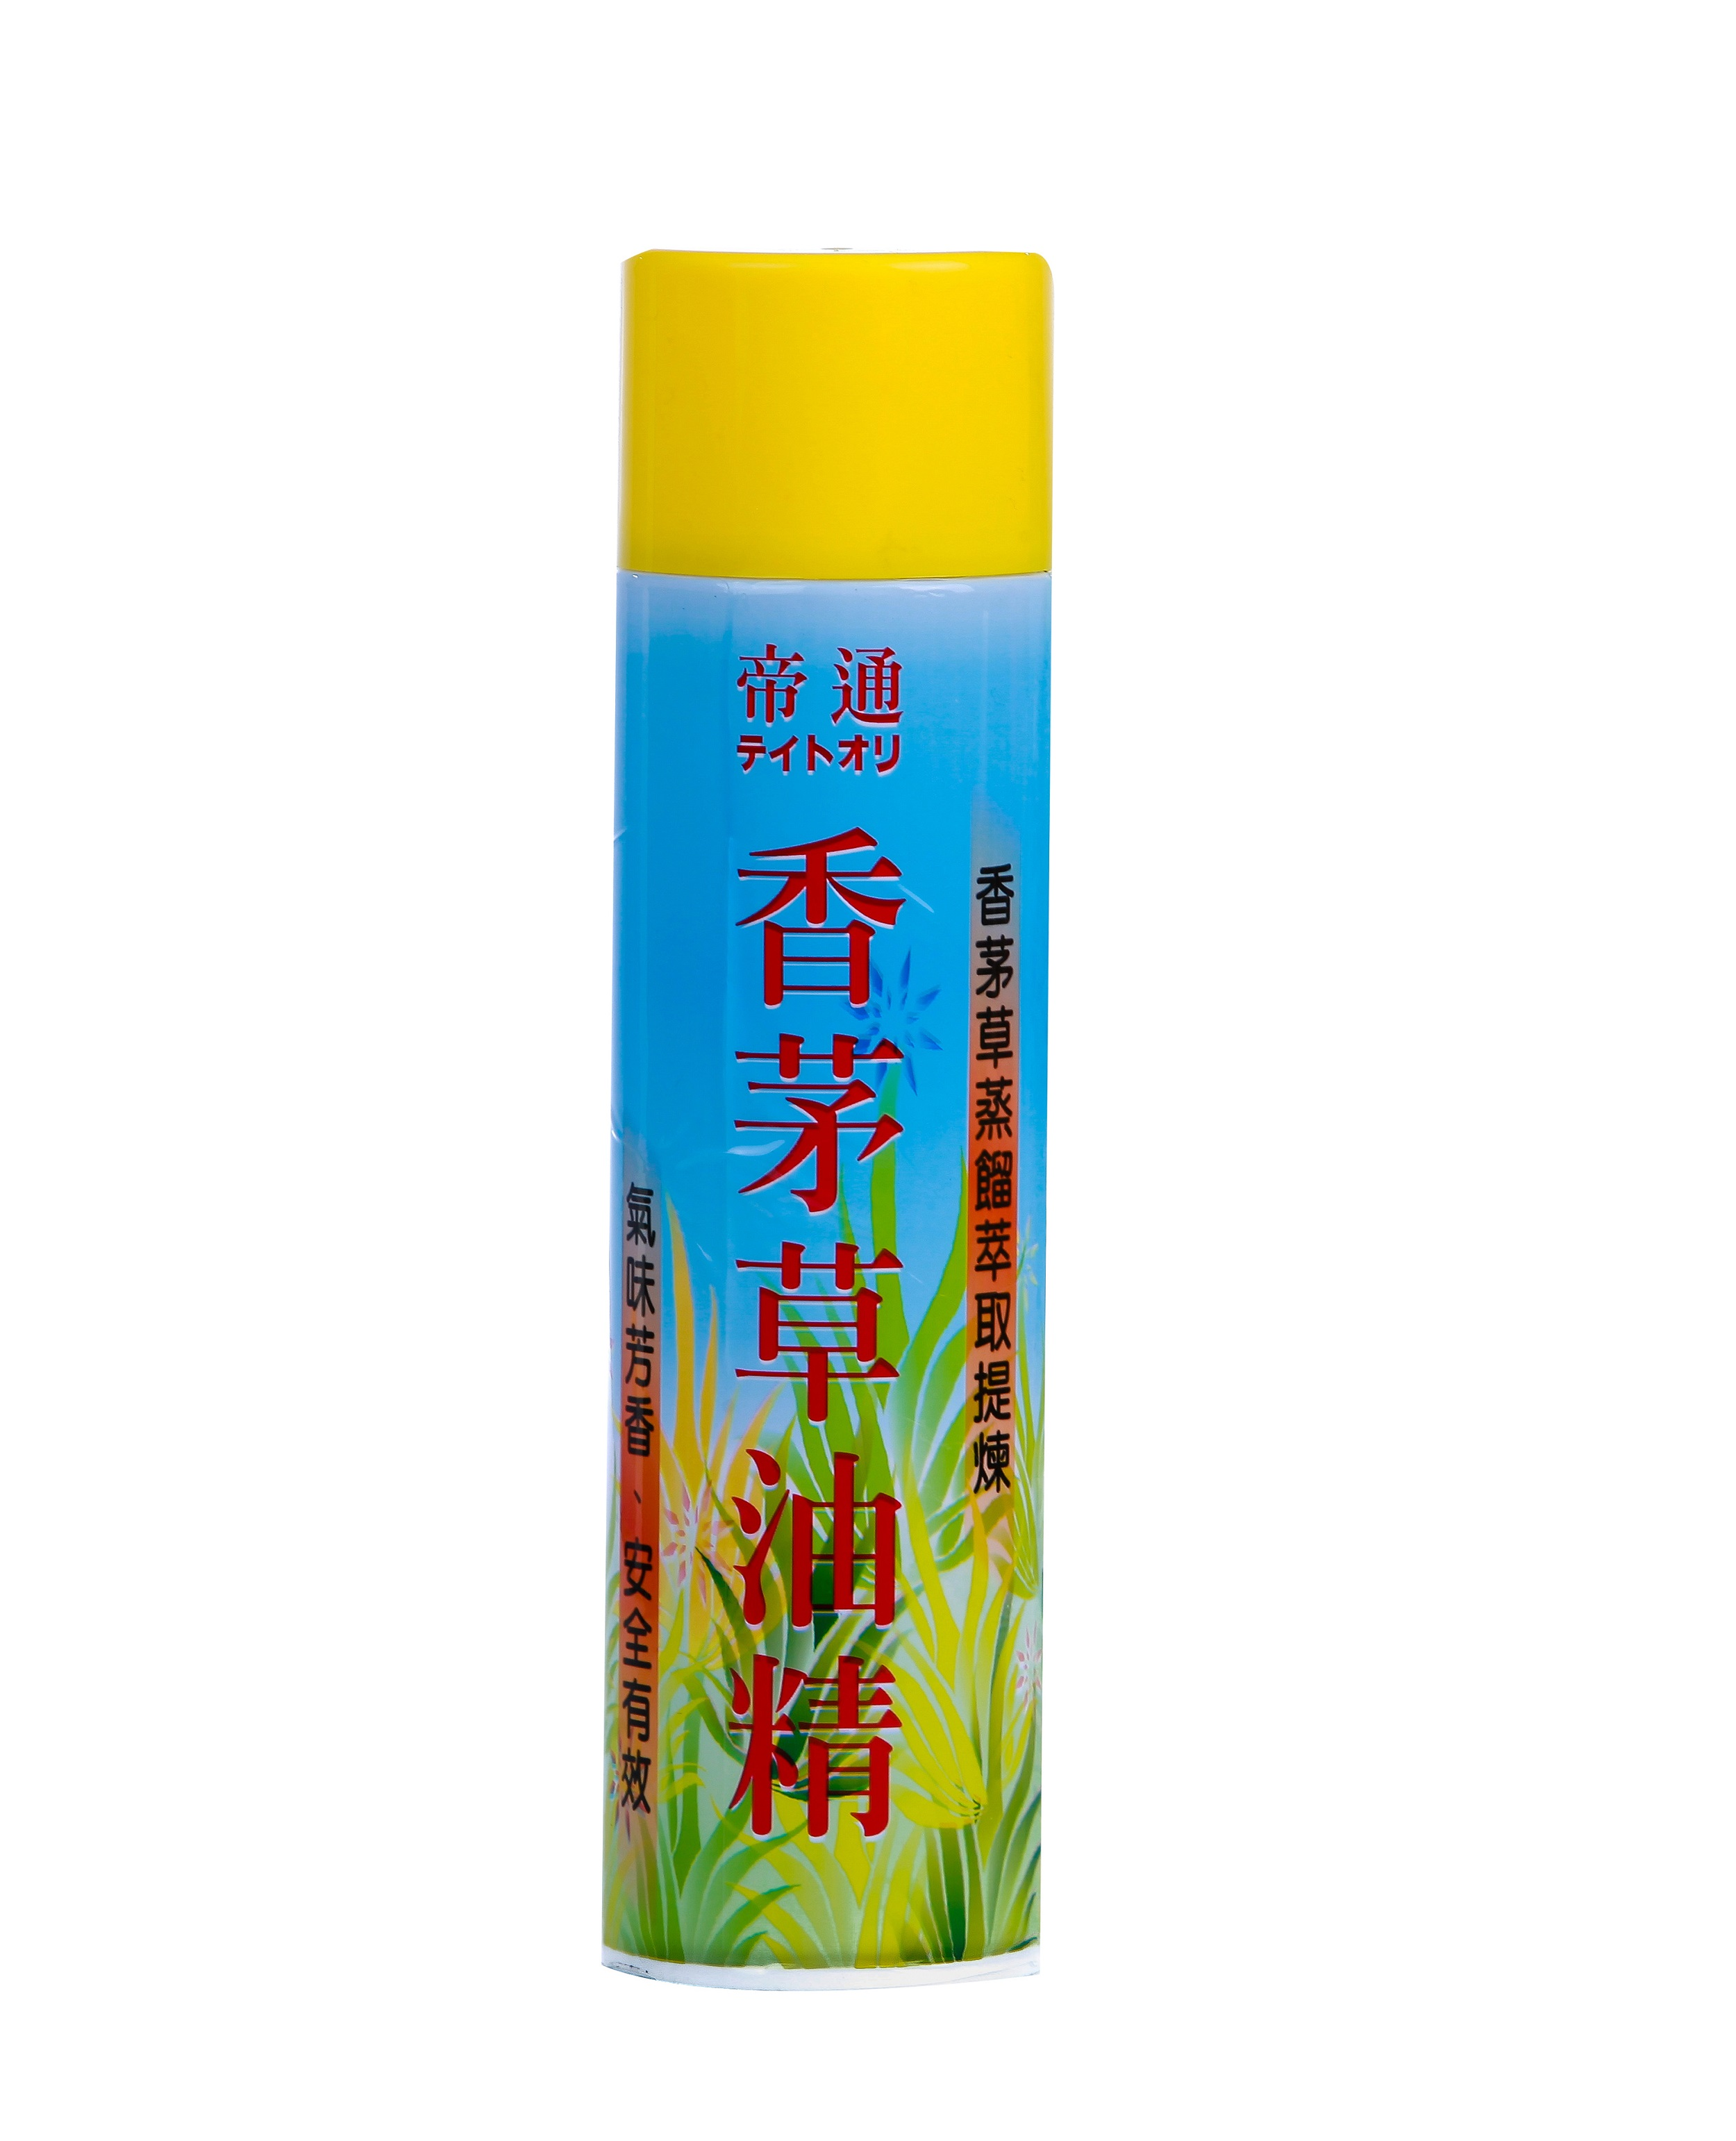 帝通香茅草油精Citronella Oil